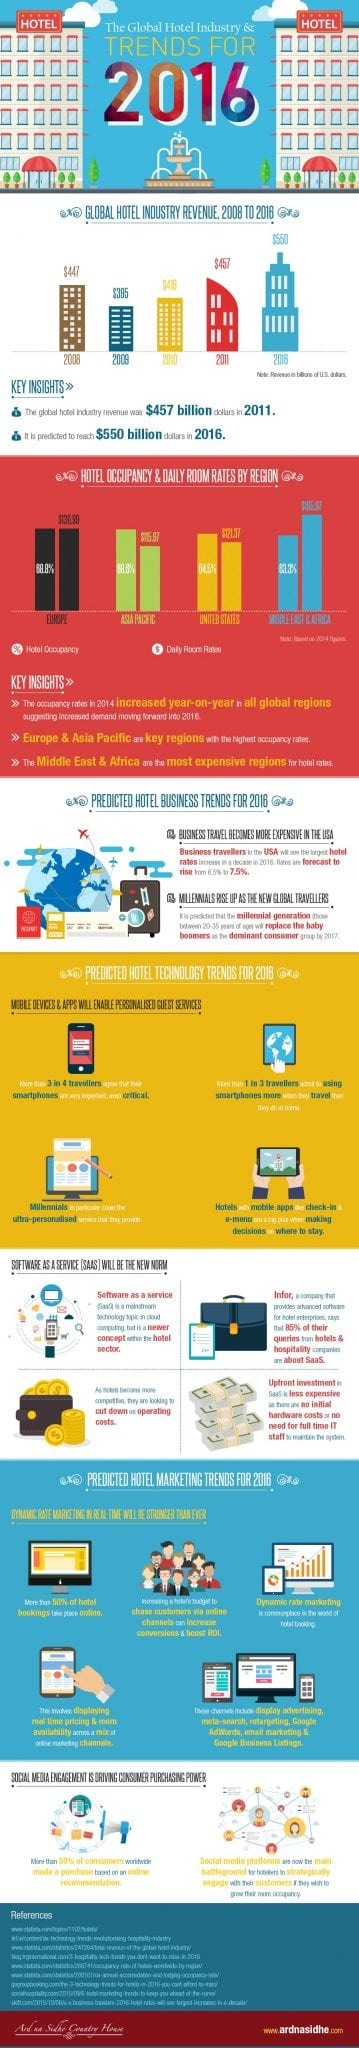 The Global Hotel Industry and Trends for 2016 Infographic